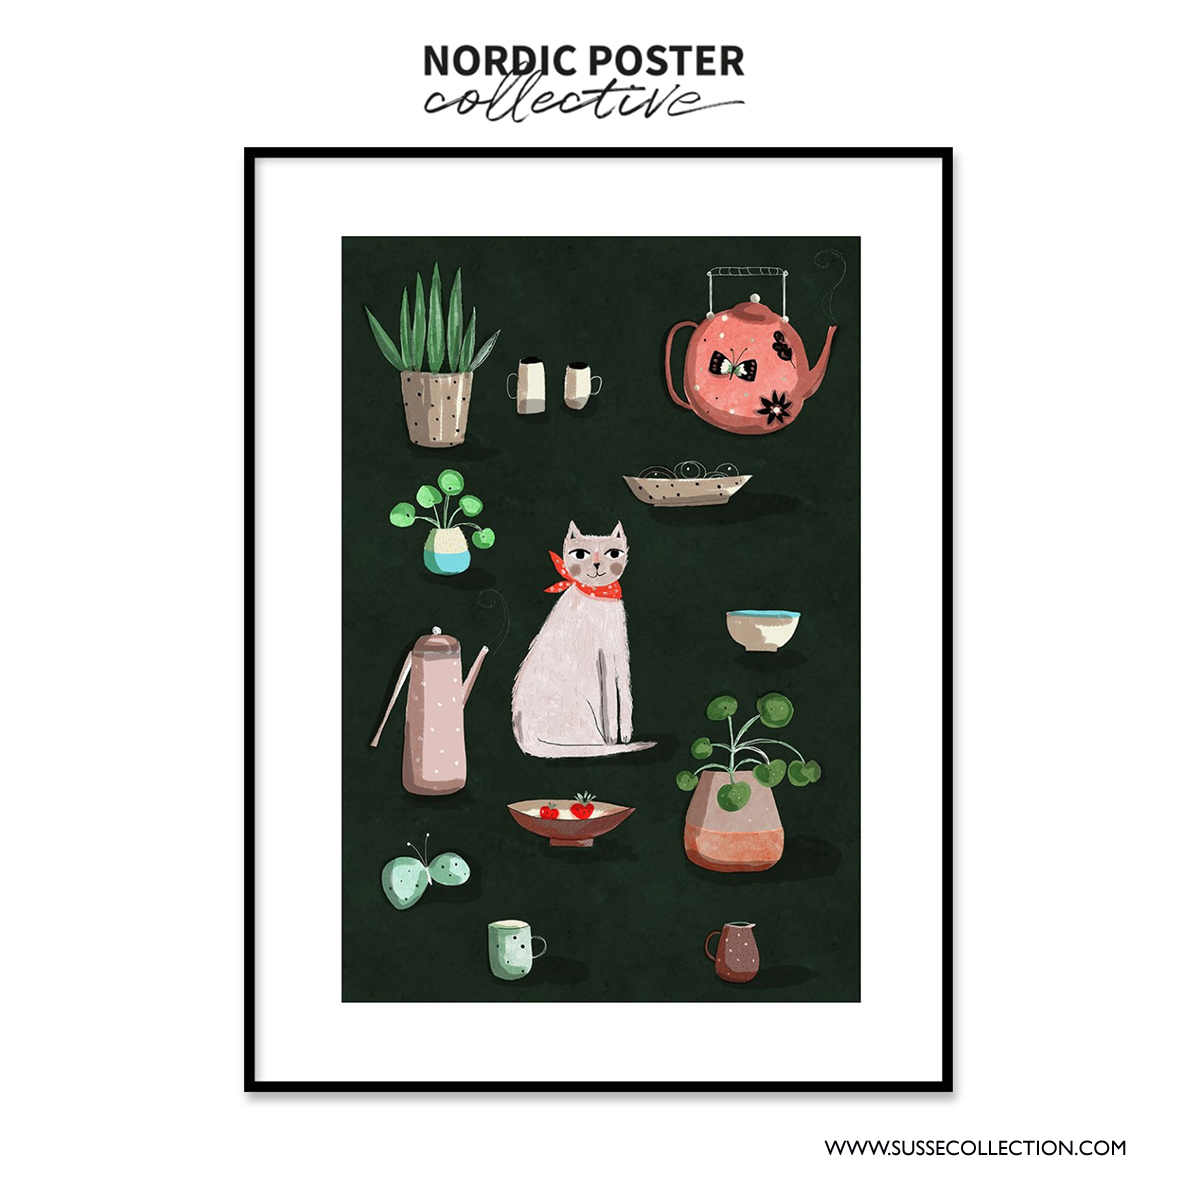 Nordic Poster Collective Susse Collection 7 .jpg